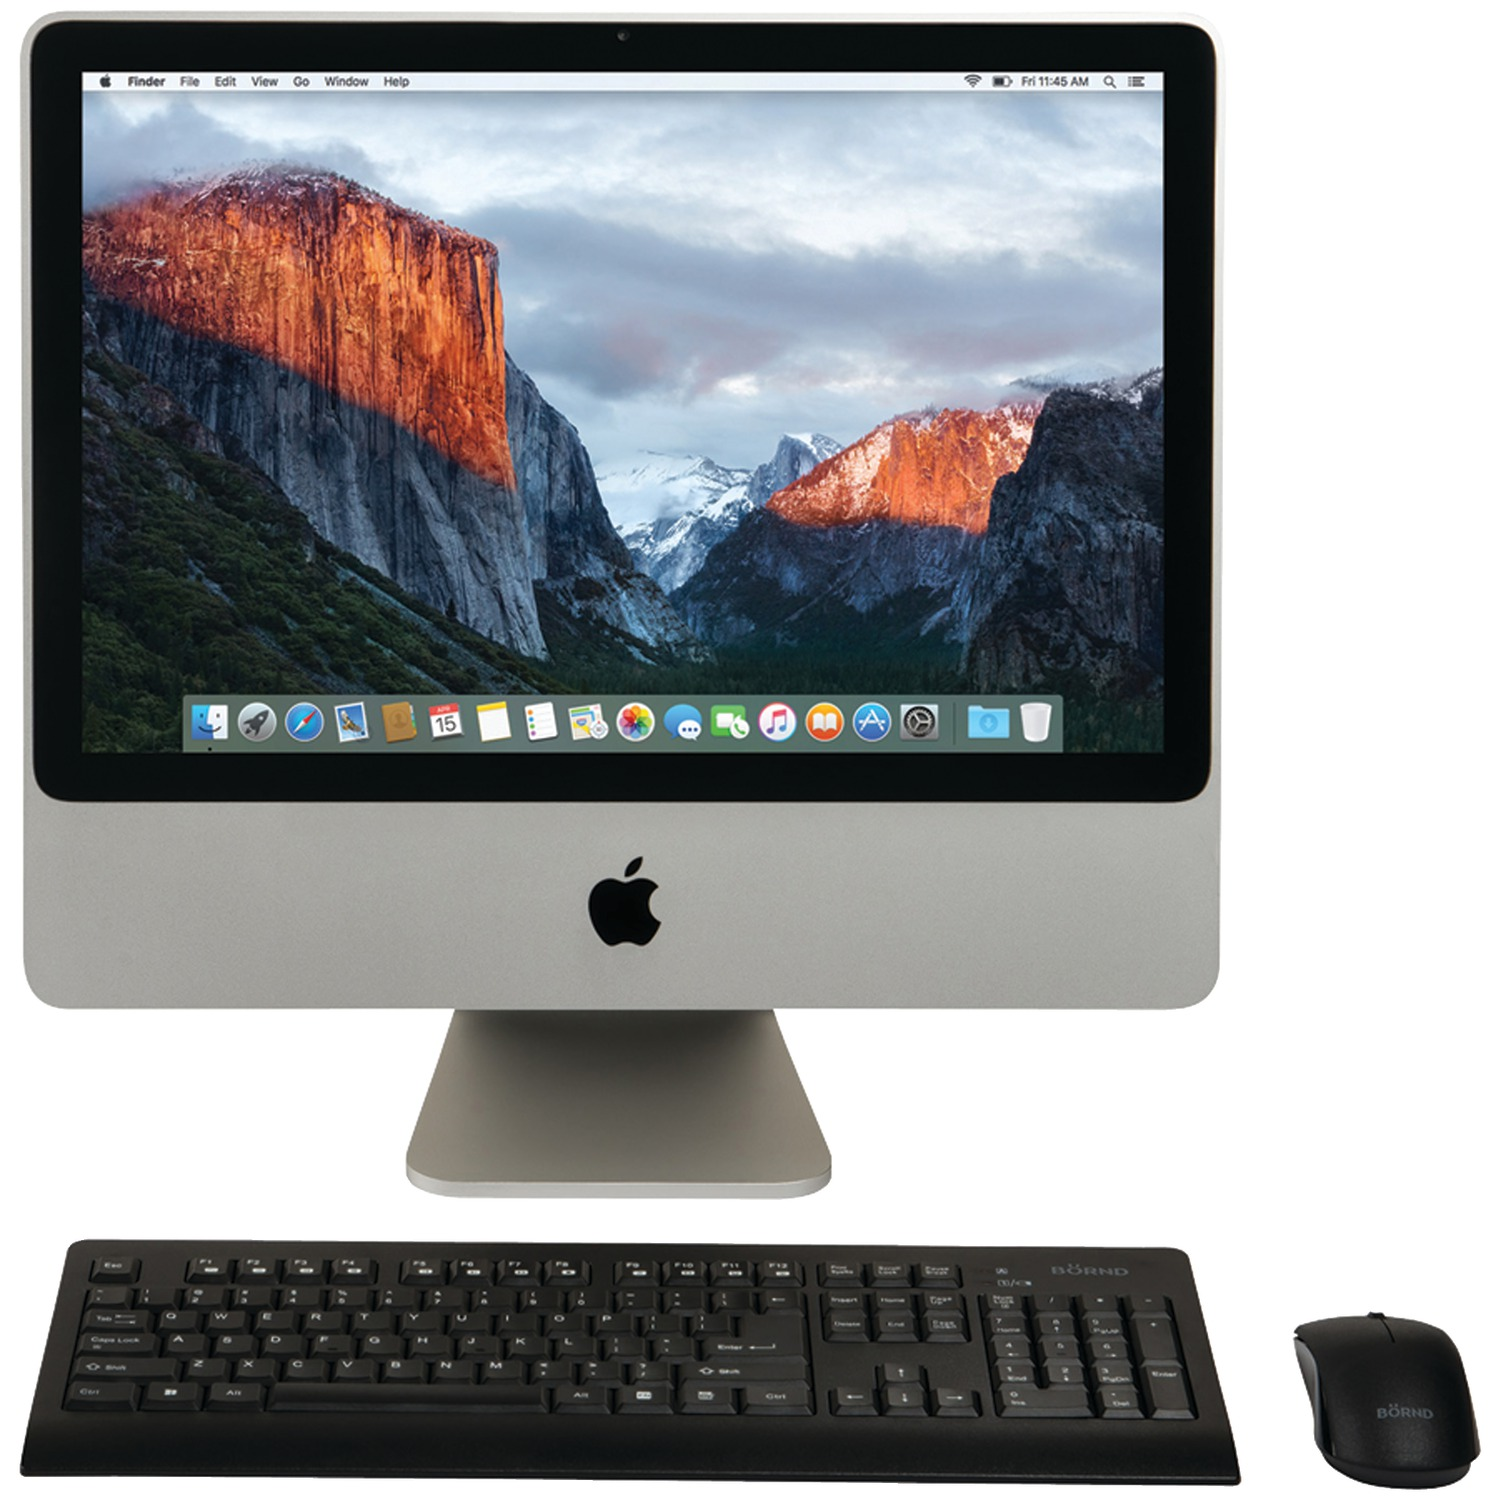 "Apple MB323LL/A/C2D/2.4/4GB/250GB/10.11 20"" Refurbished iMac Desktop Computer"